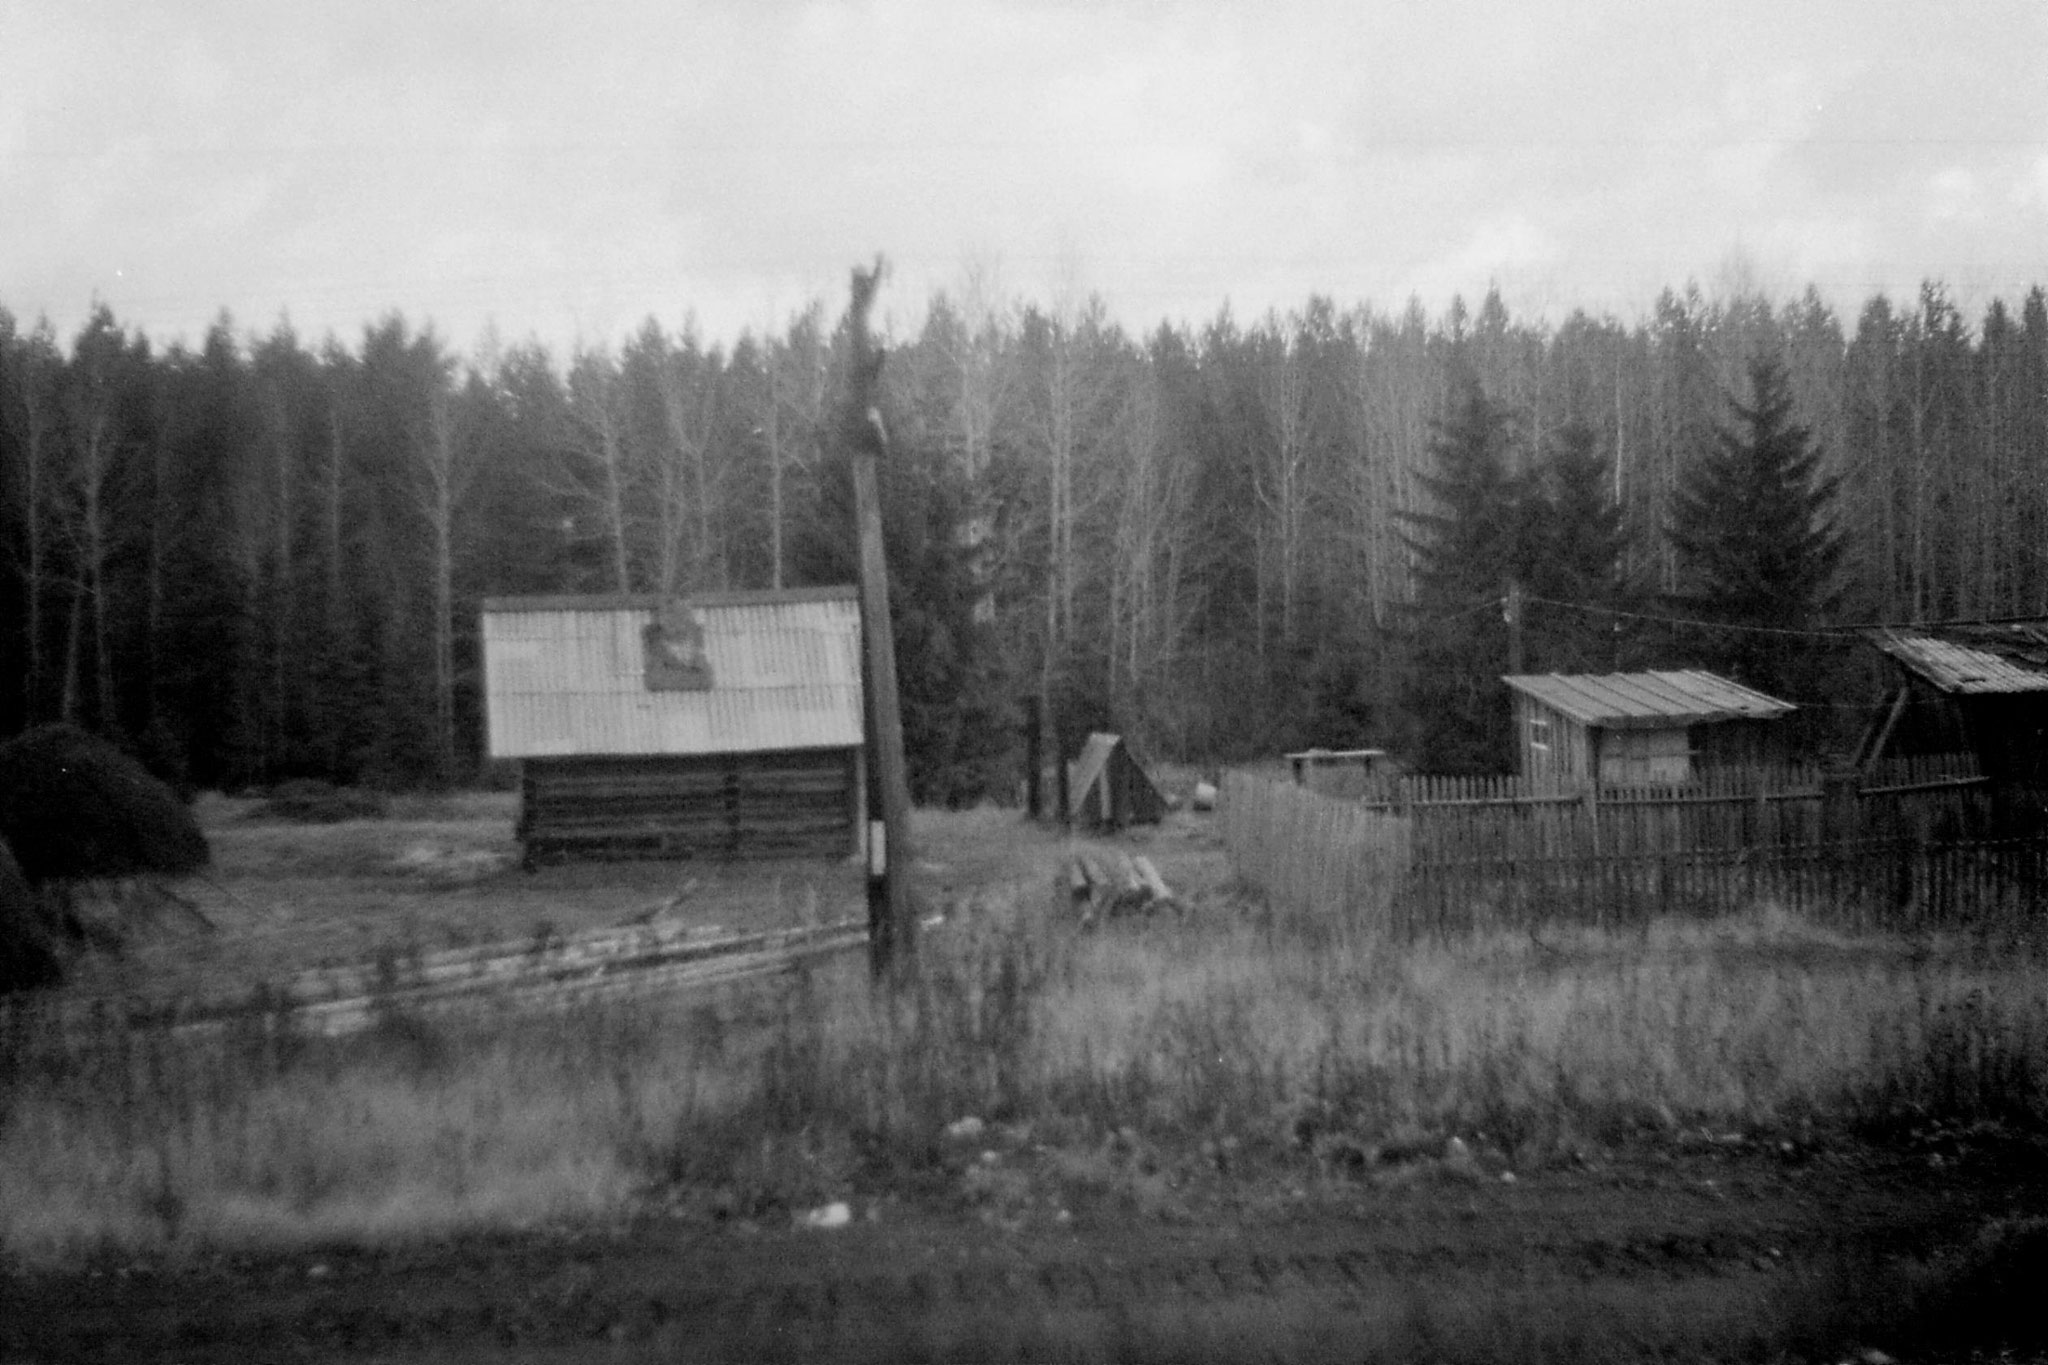 19/10/1988: 20: from Siberian Express between Balezino and Perm